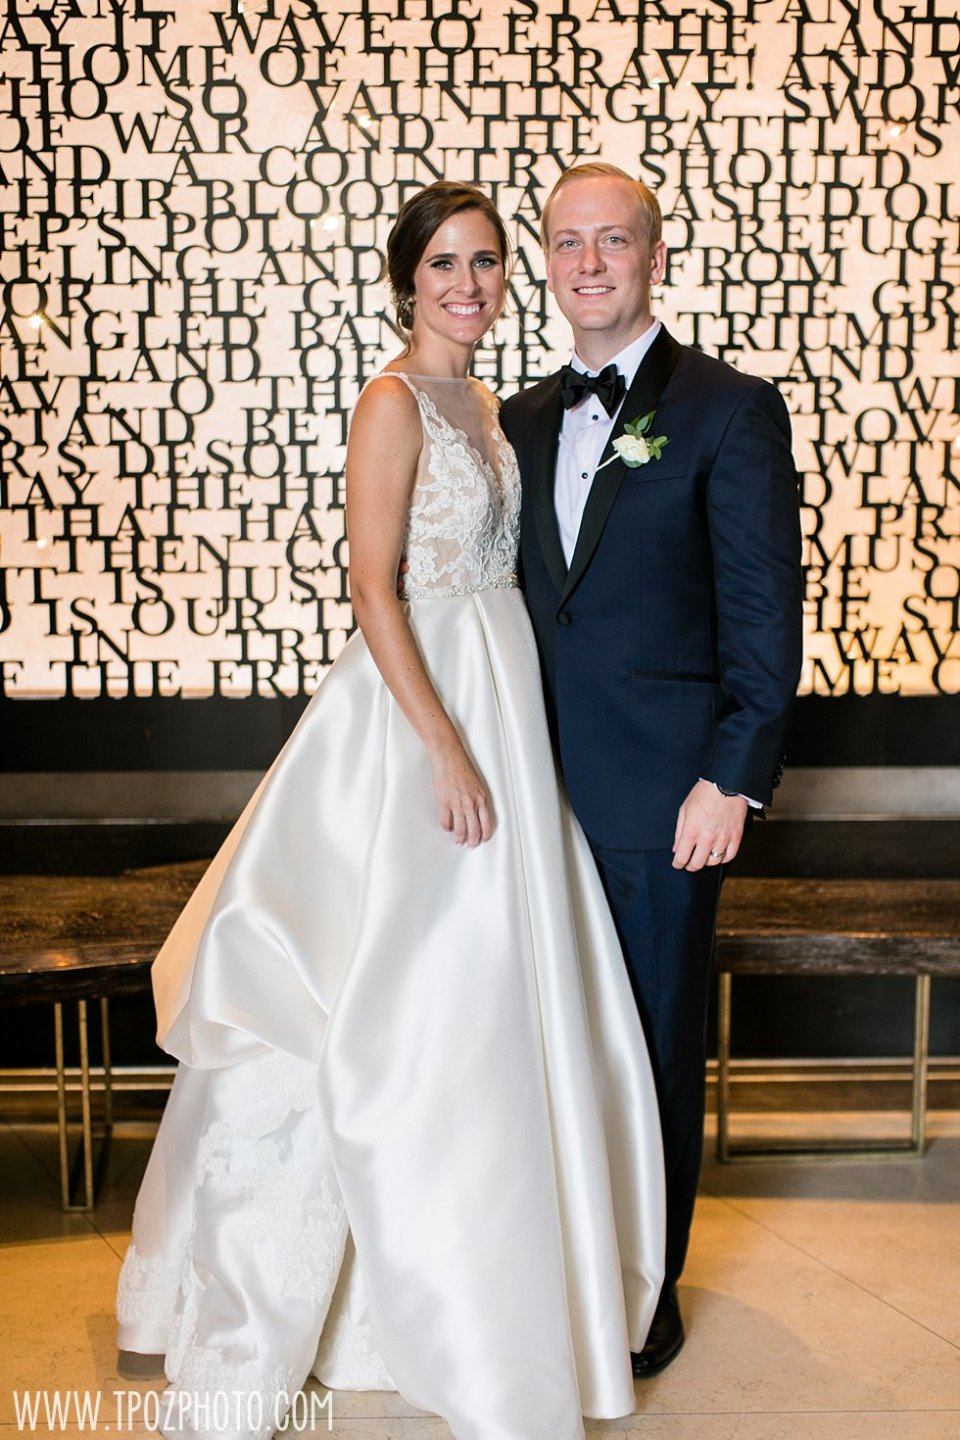 Sagamore Pendry Wedding Photos in the lobby • tPoz Photography •  www.tpozphoto.com